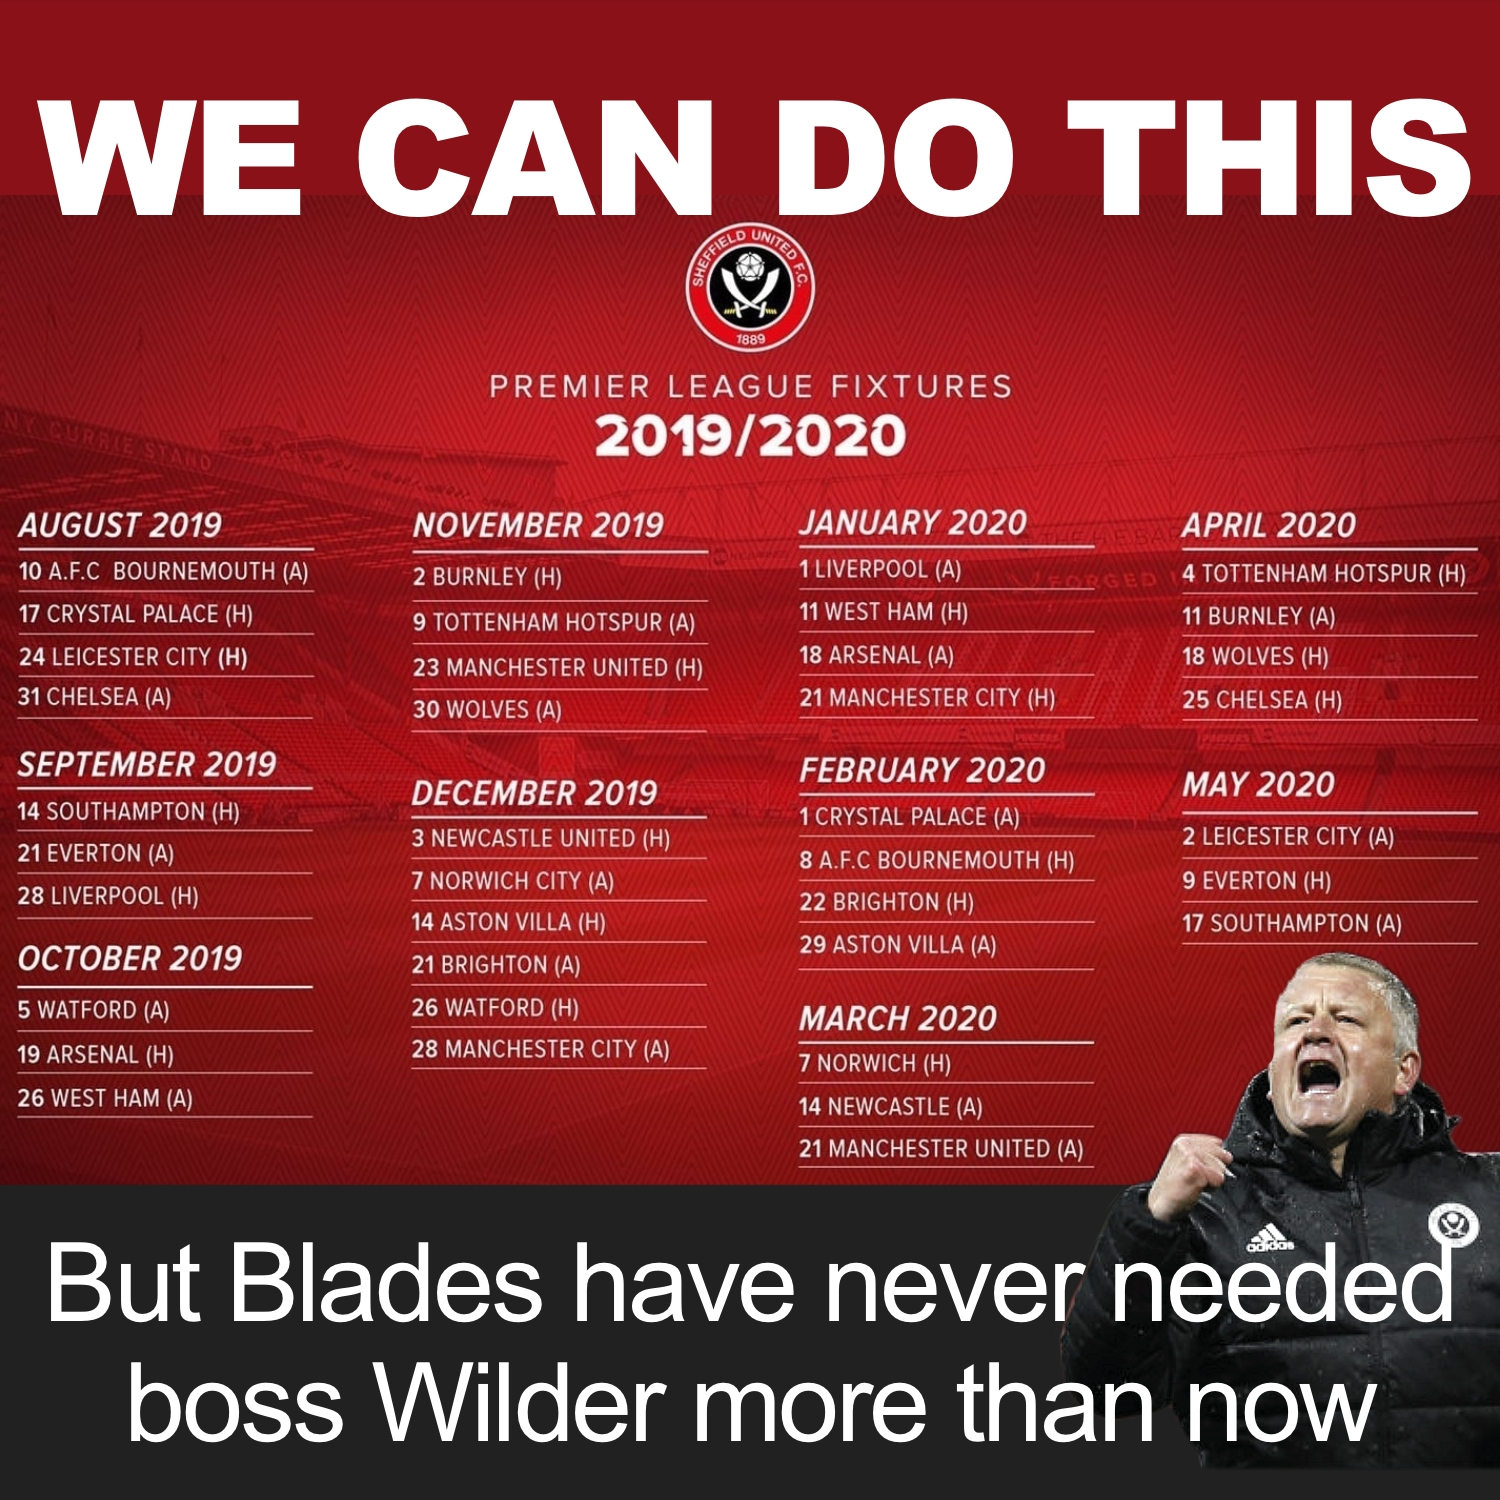 Sheffield United need boss Chris Wilder now more than ever if they are to survive in Premier League